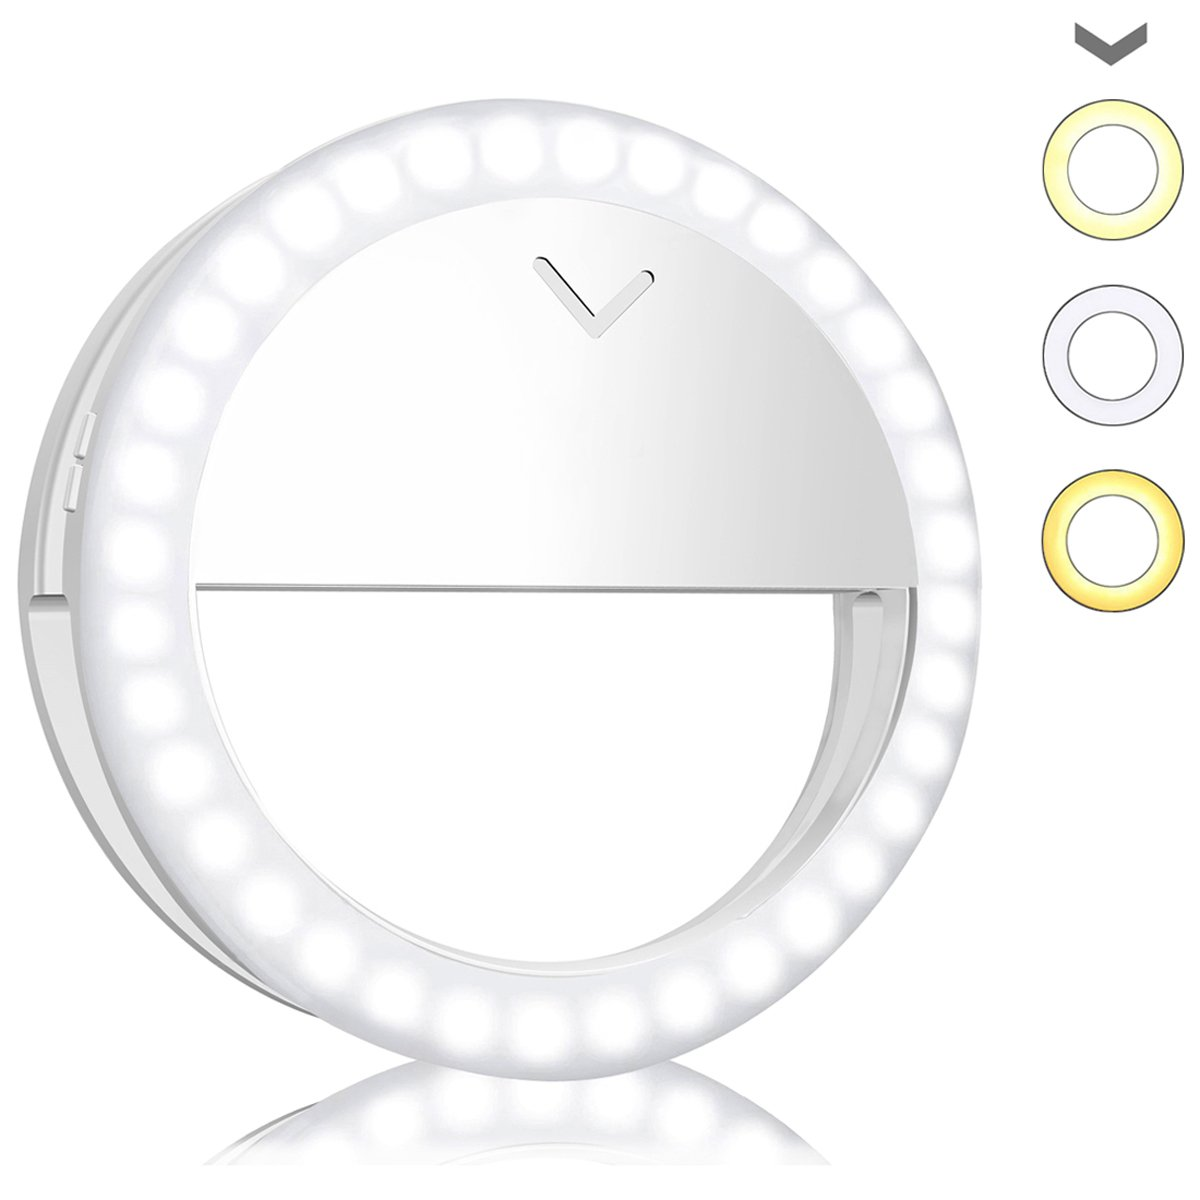 Avanz Selfie Ring Light for Camera, Rechargeable 40 LED Ring Light 4-Level Brightness for iPhone iPad Tablet Laptop Samsung Galaxy Photography Phones, White & Warm